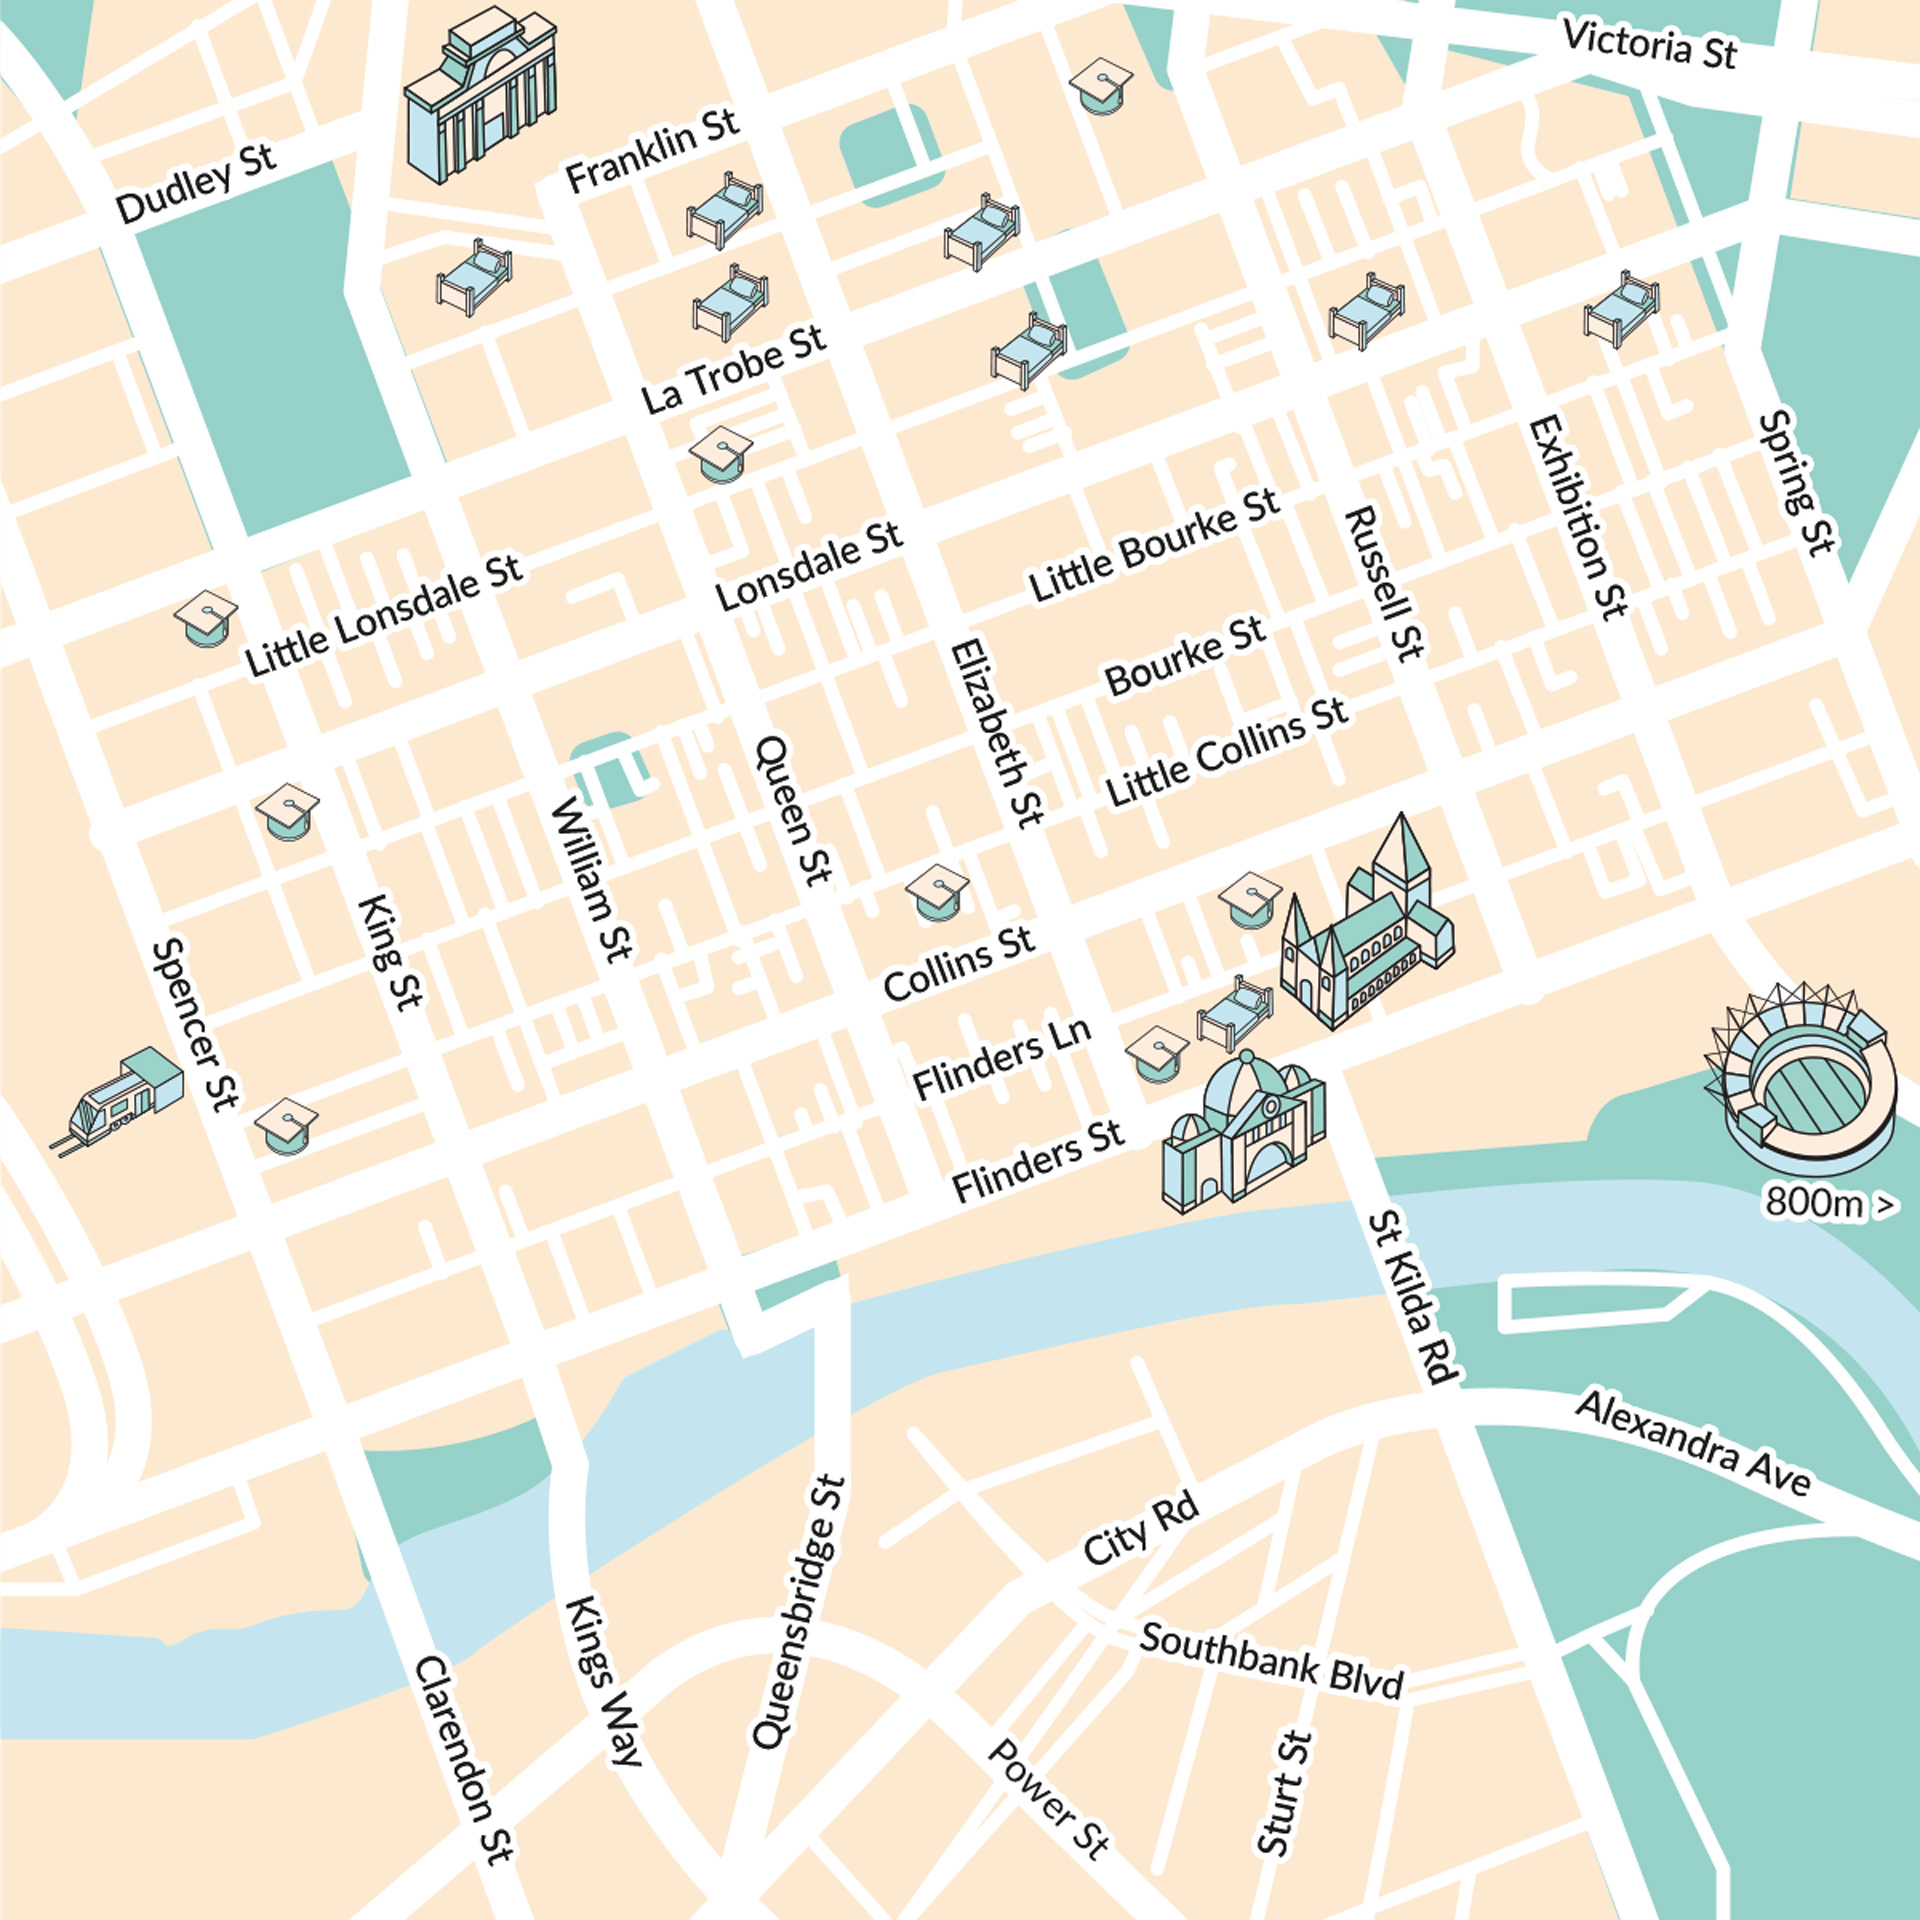 Melbourne illustrated map